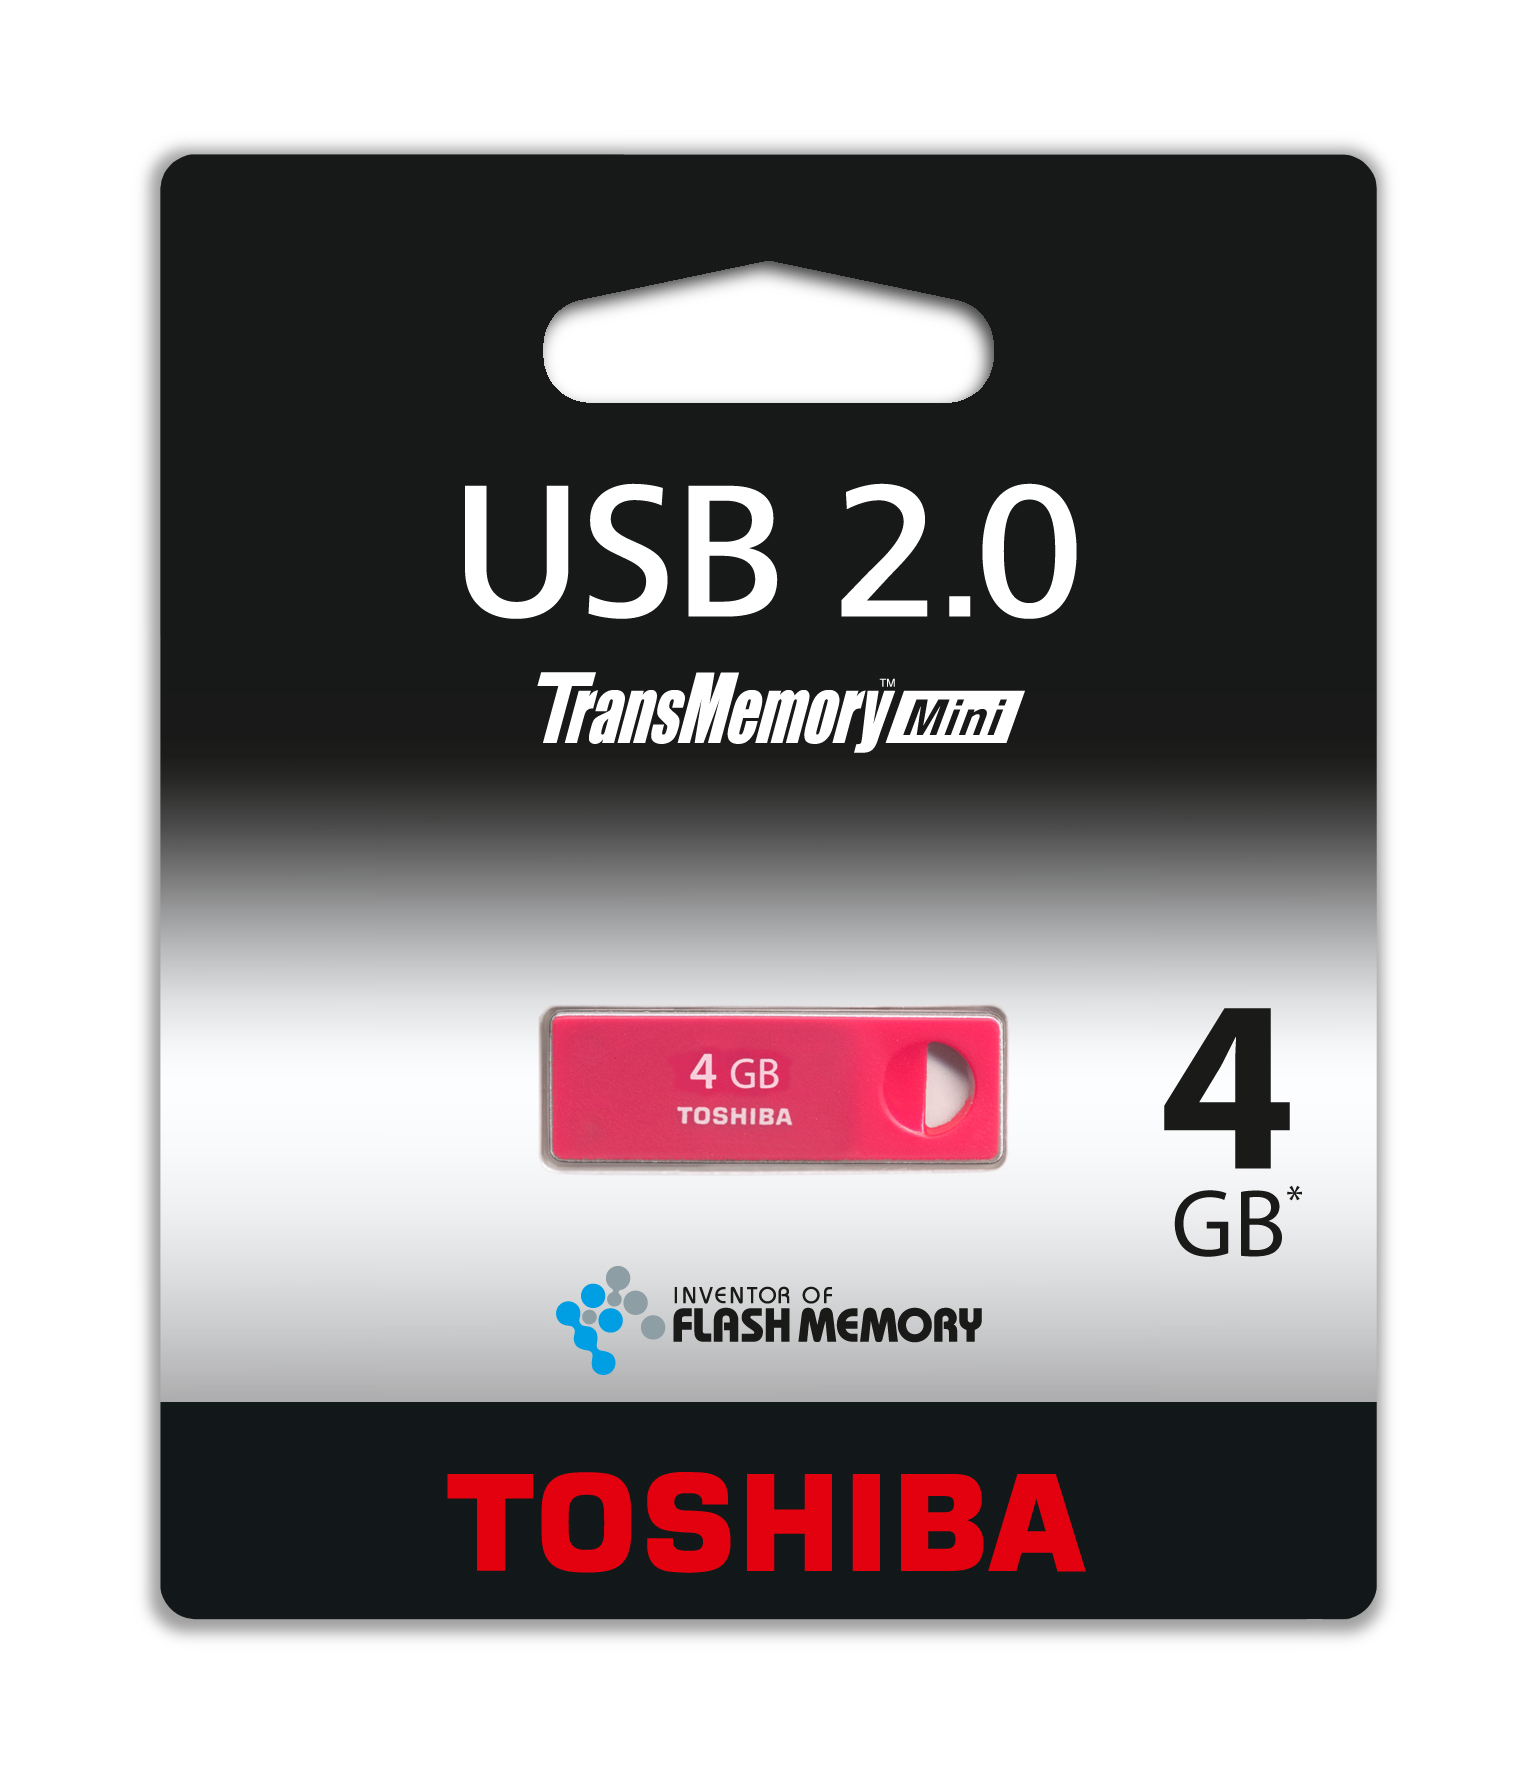 Фото: USB Flash Drive 4Gb Toshiba Enshu Rosered / THNU04ENSRED(BL5